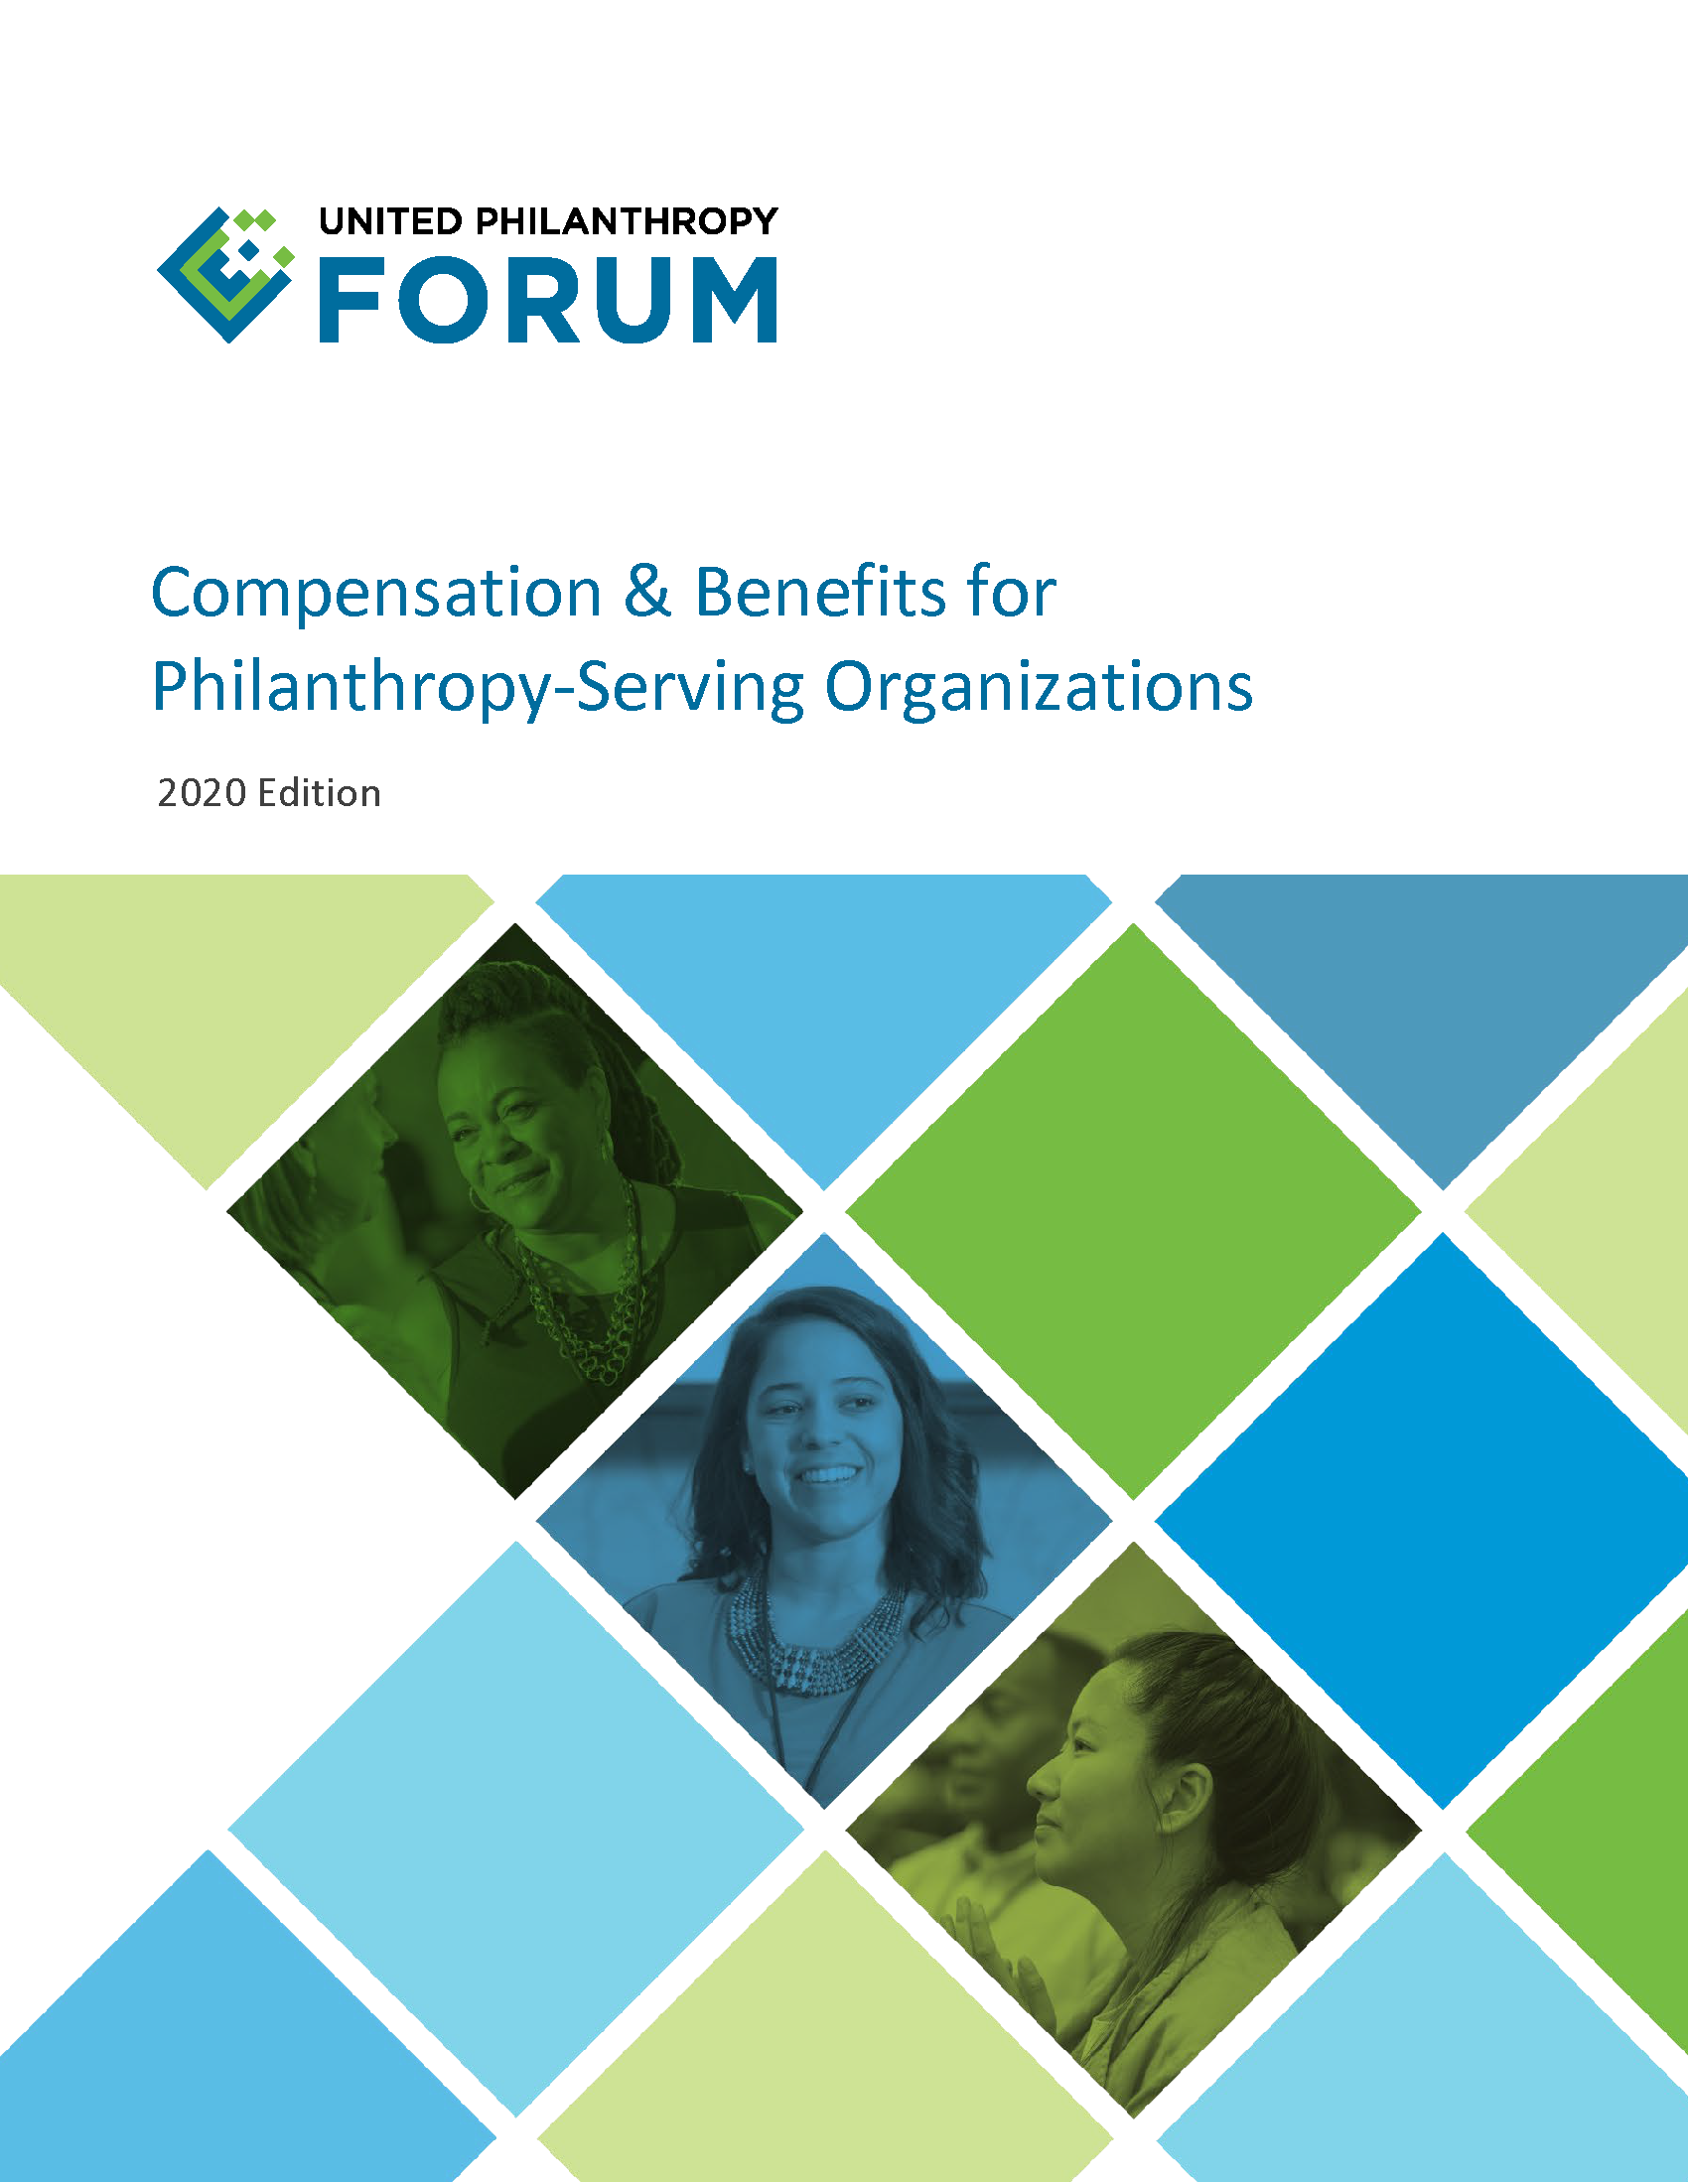 2020 Compensation and Benefits for PSOs Report Cover